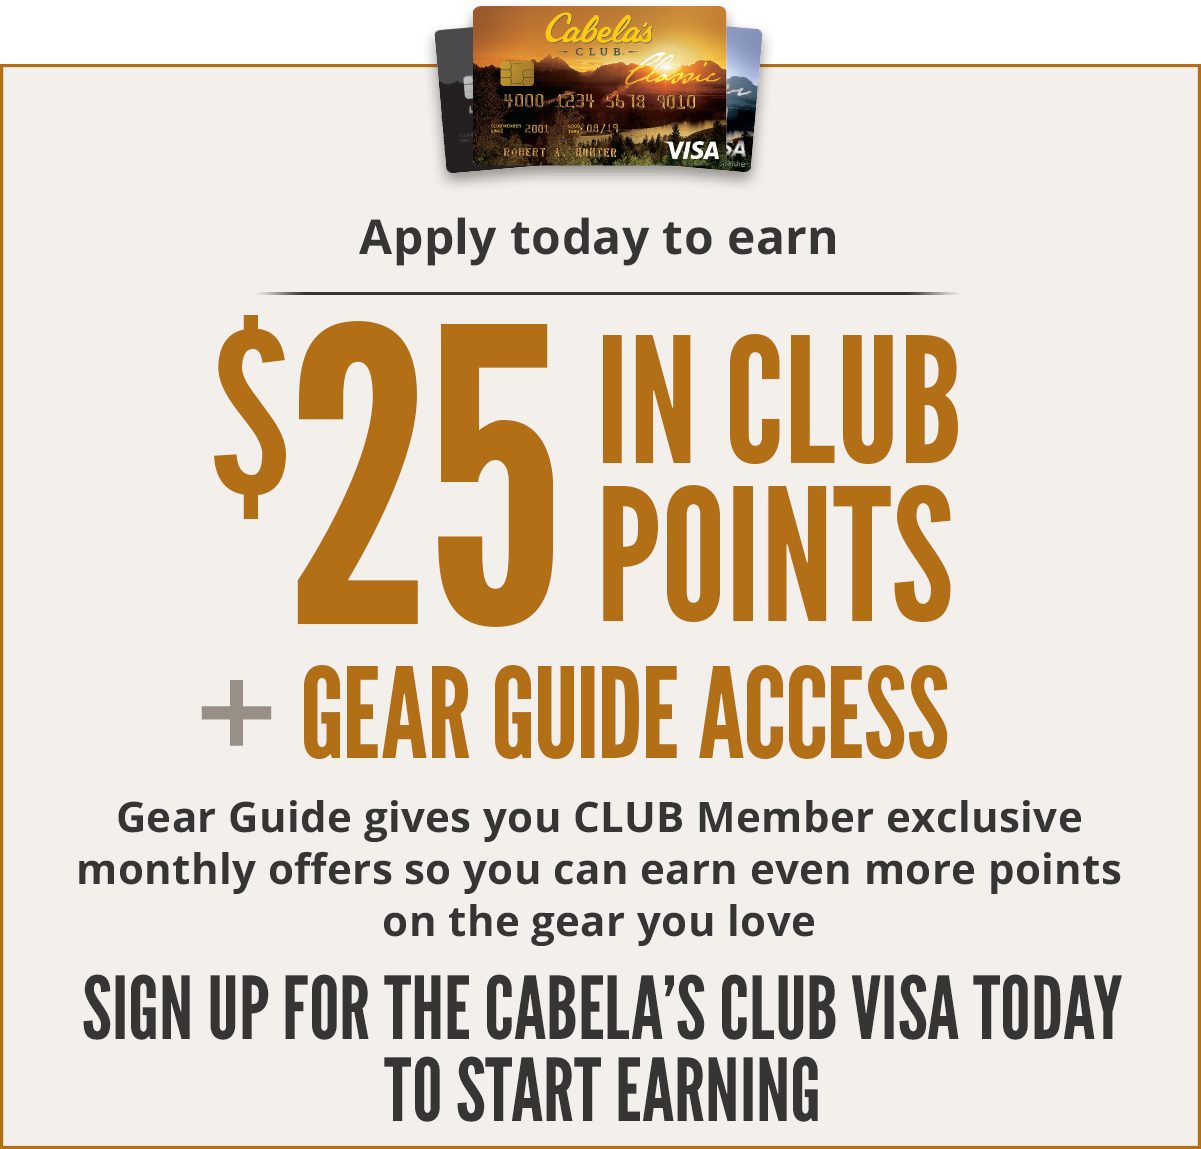 Earn CLUB points and Gear Guide access - Sign up today to start earning